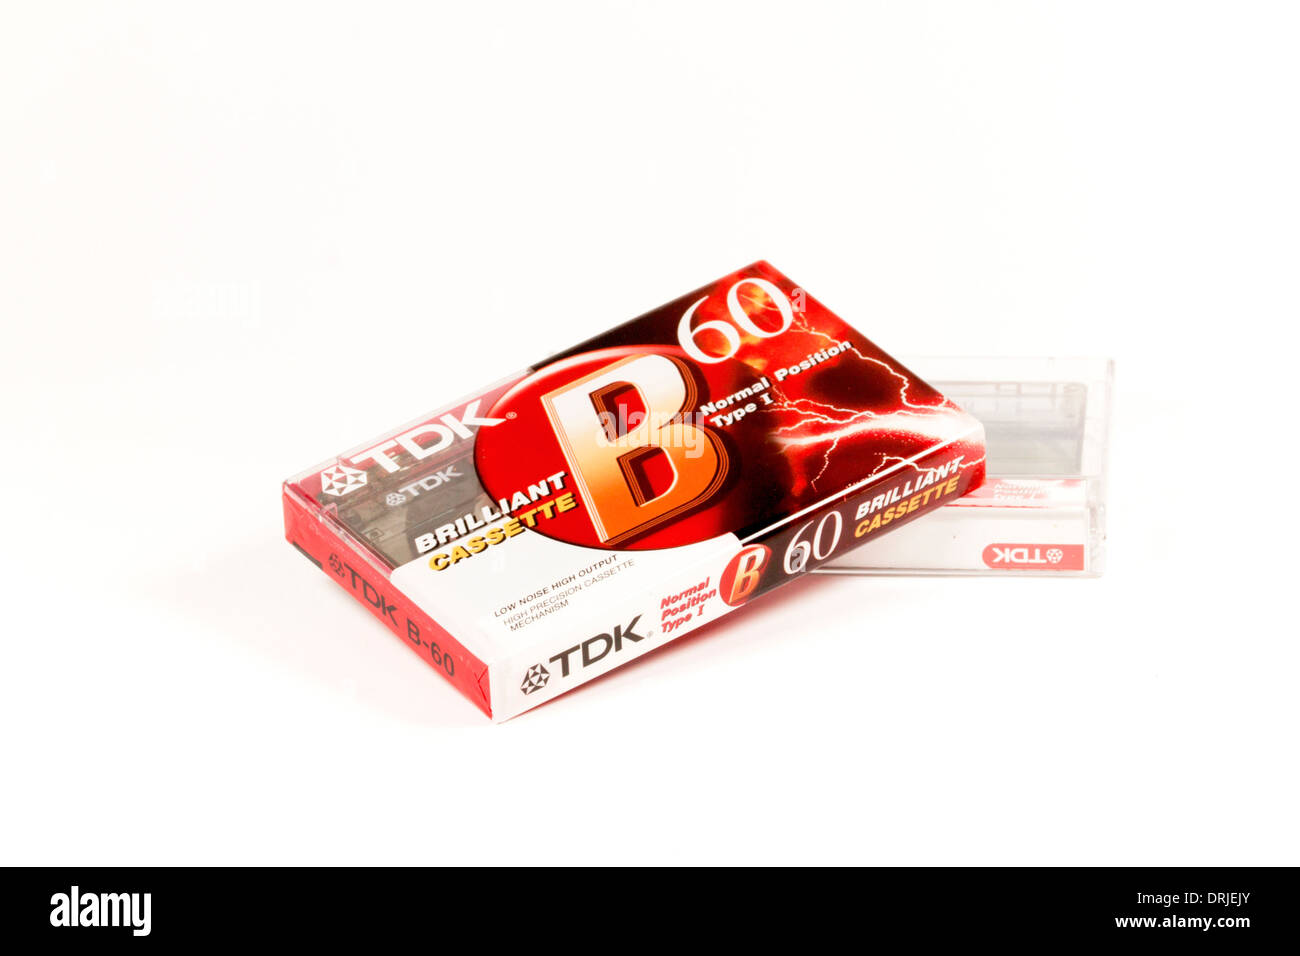 DURBAN, SOUTH AFRICA - JANUARY 24, 2014: One opened and one used TDK 60 minute cassette tape - Stock Image